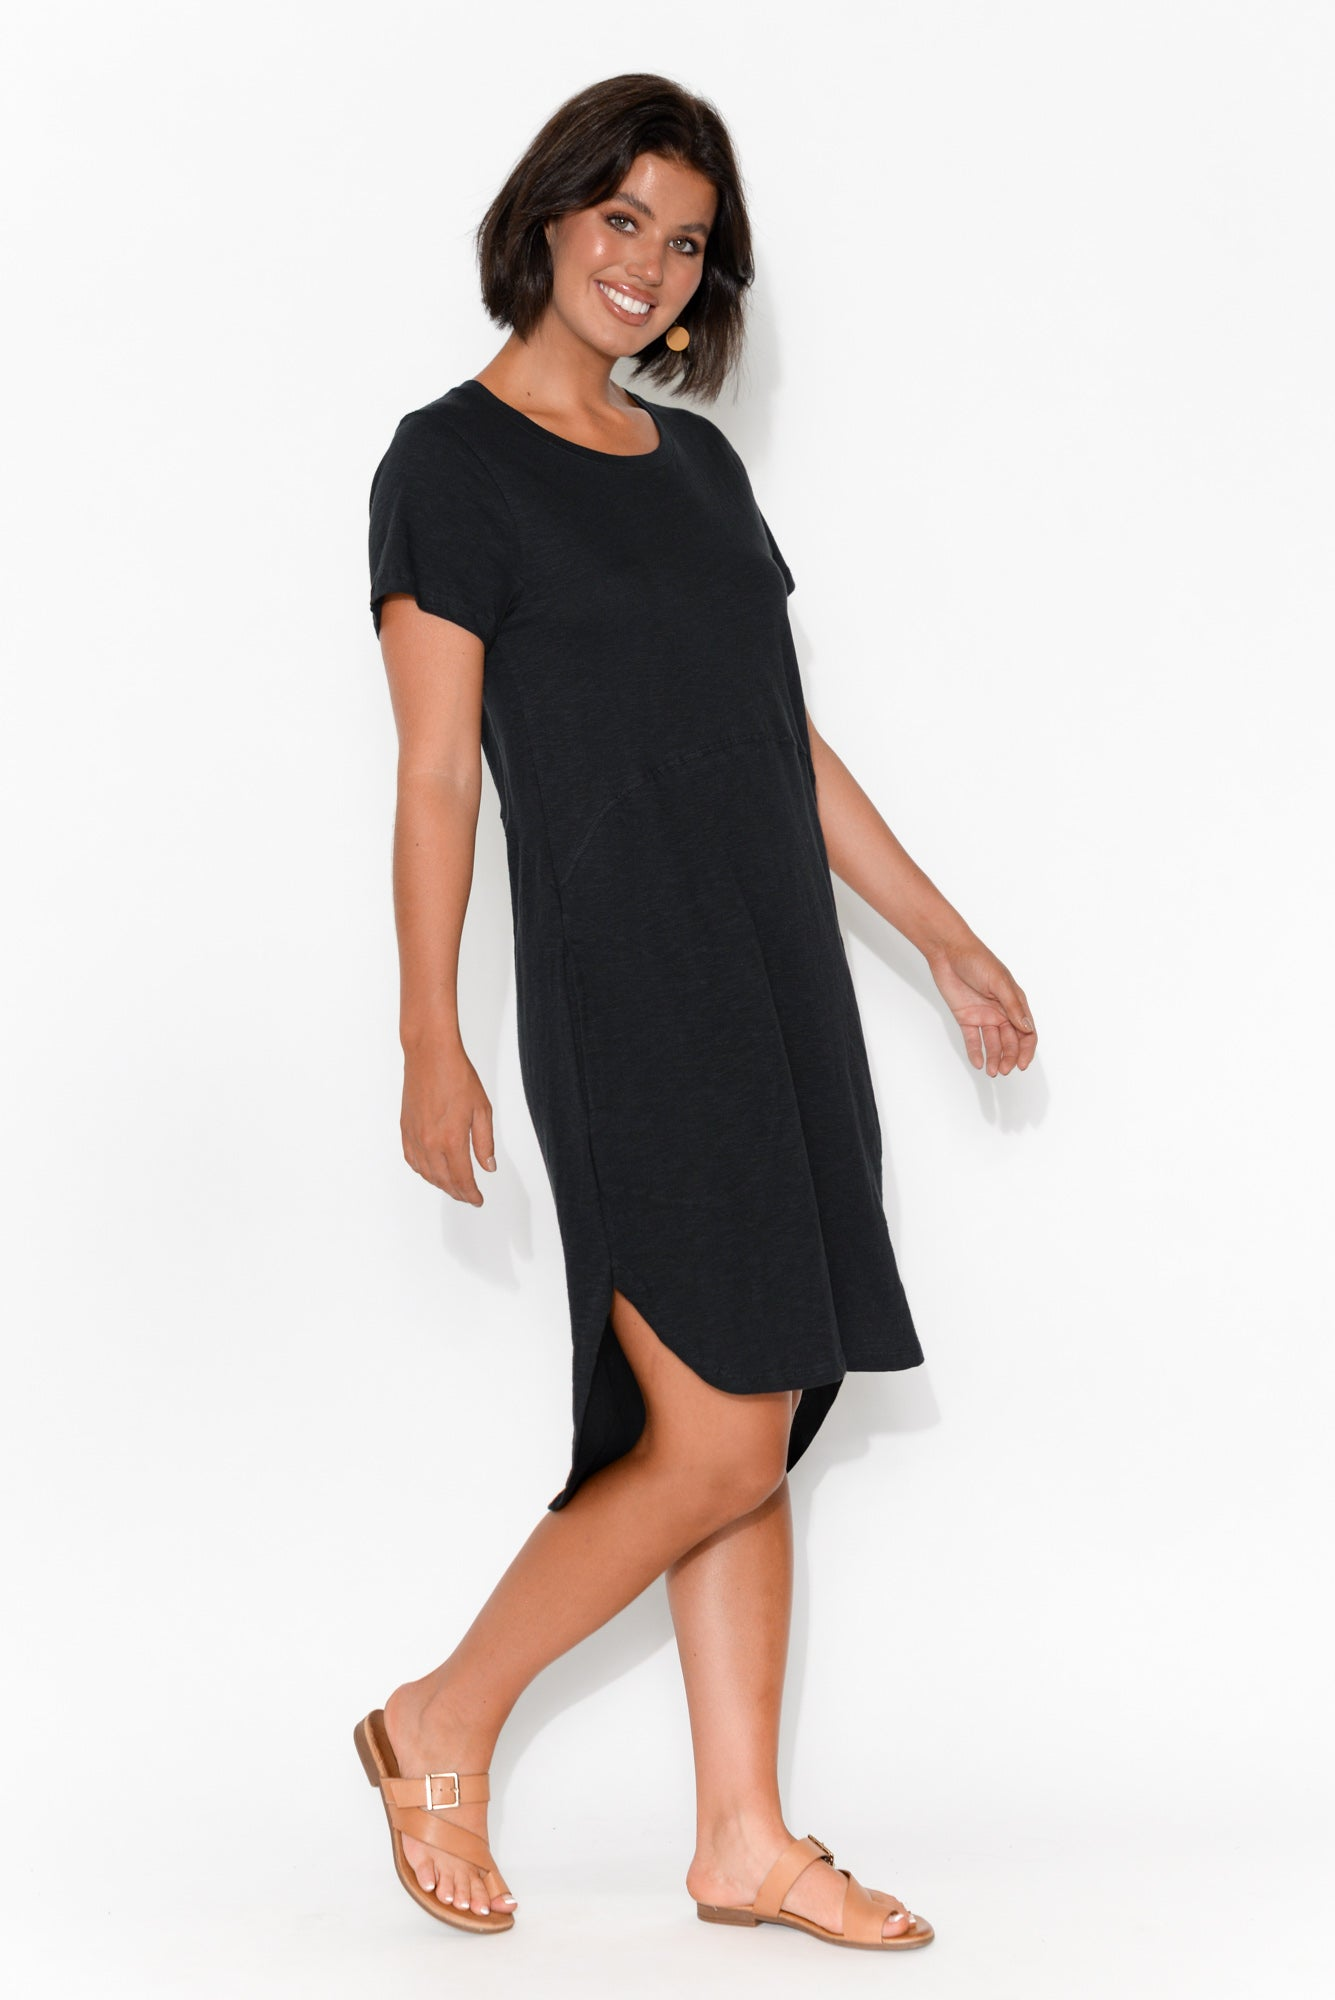 Bayley Black Cotton Tee Dress